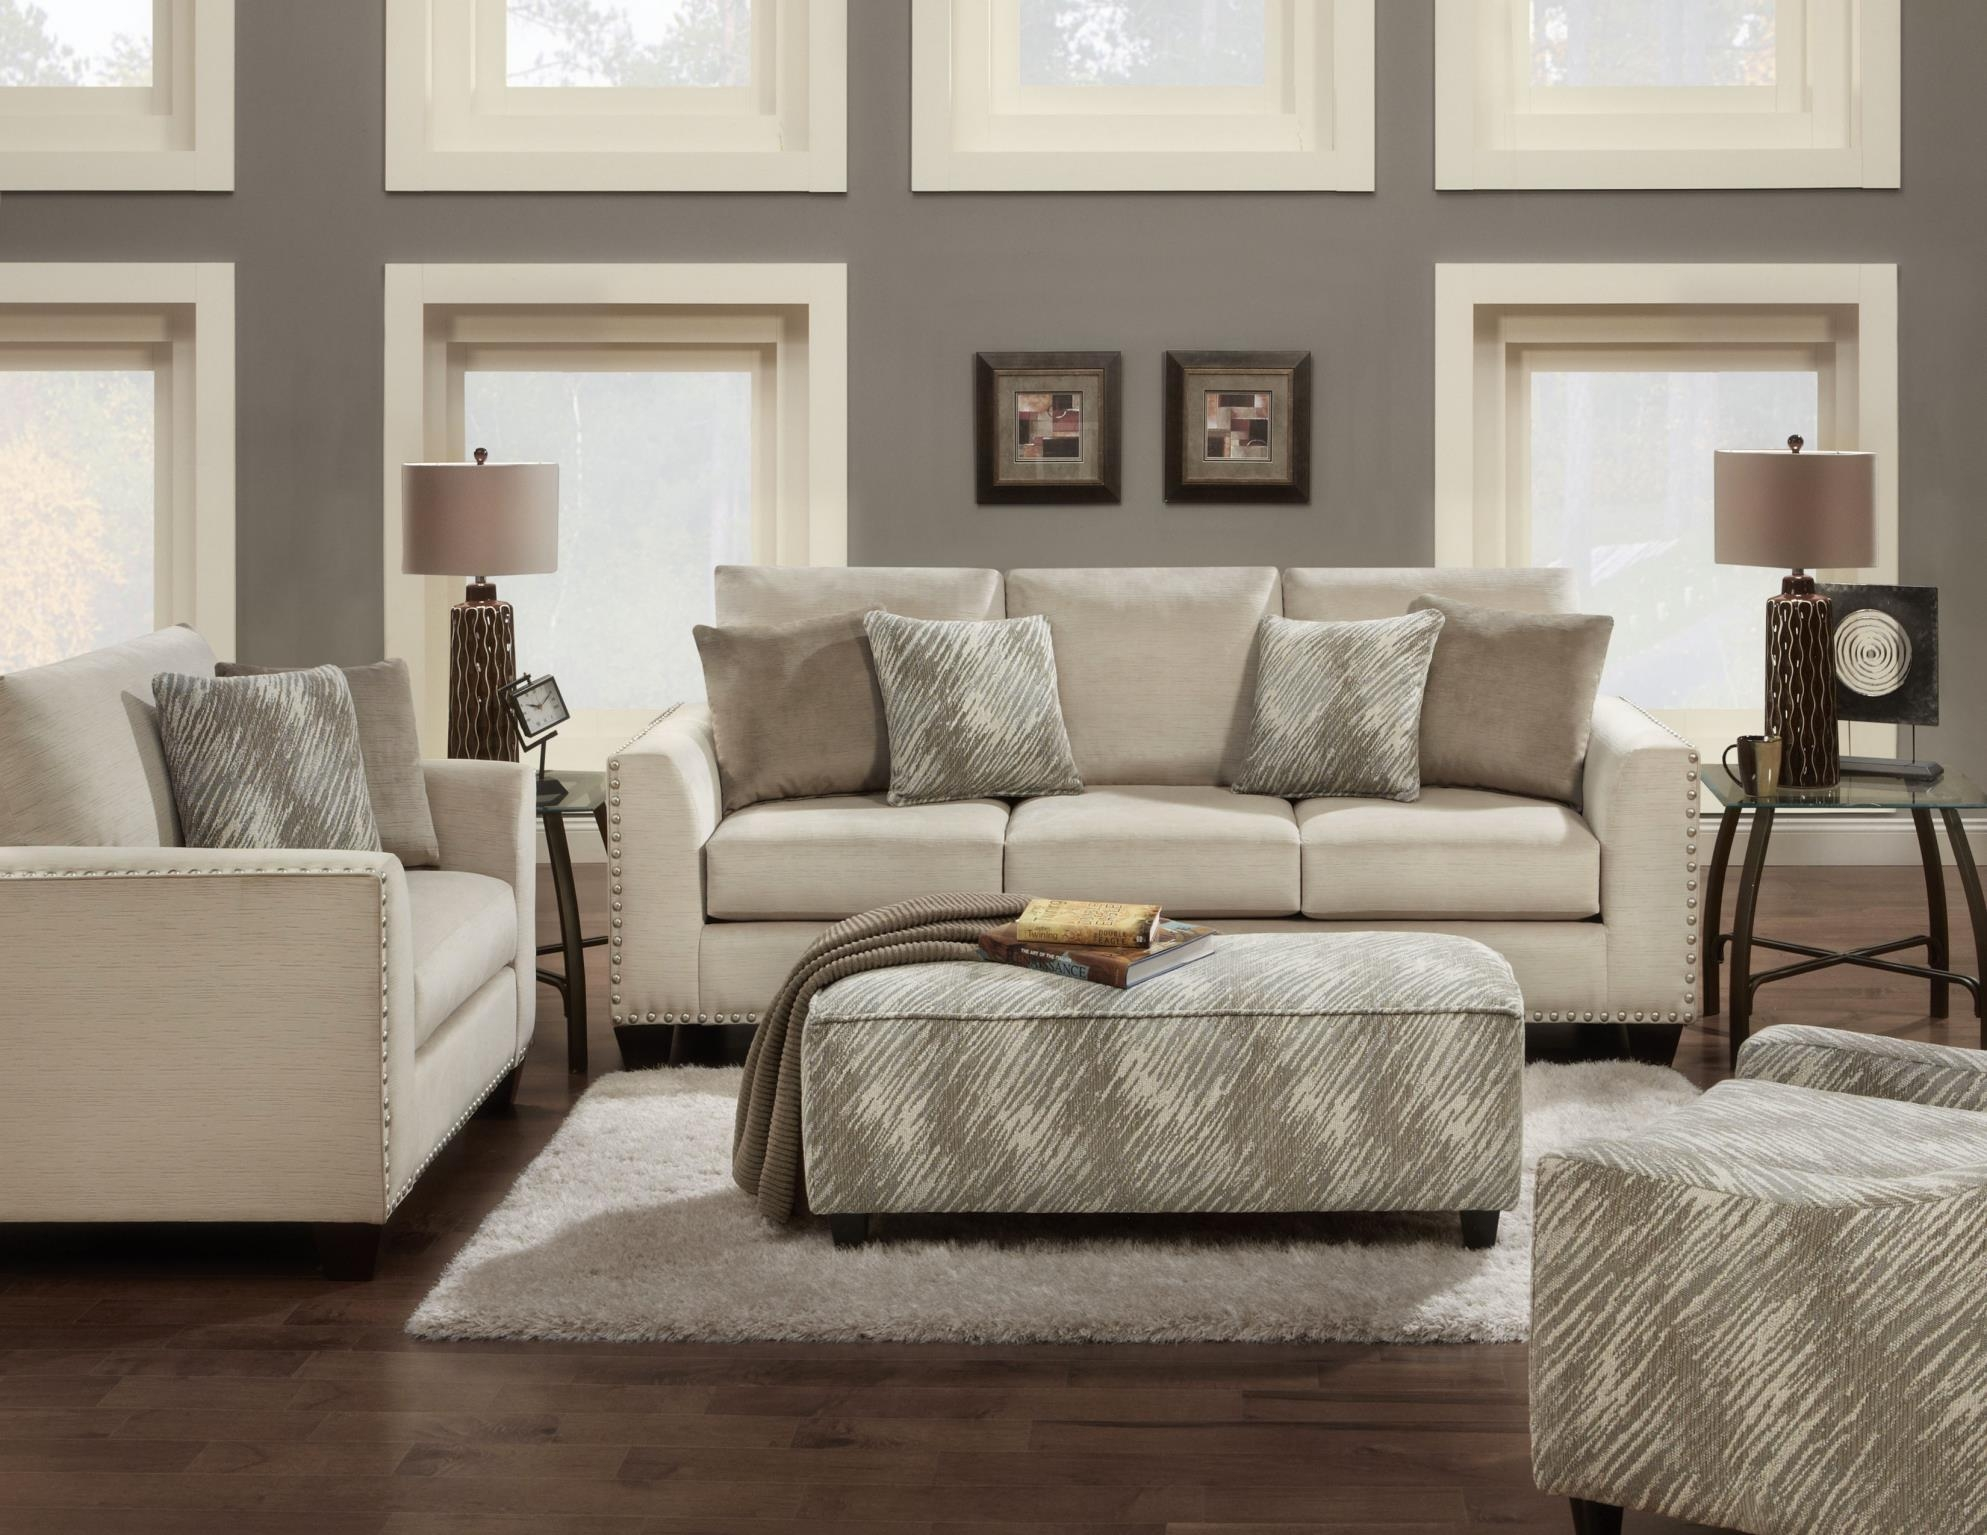 Fabric Sofas With Casual Sofas And Chairs (Image 15 of 21)